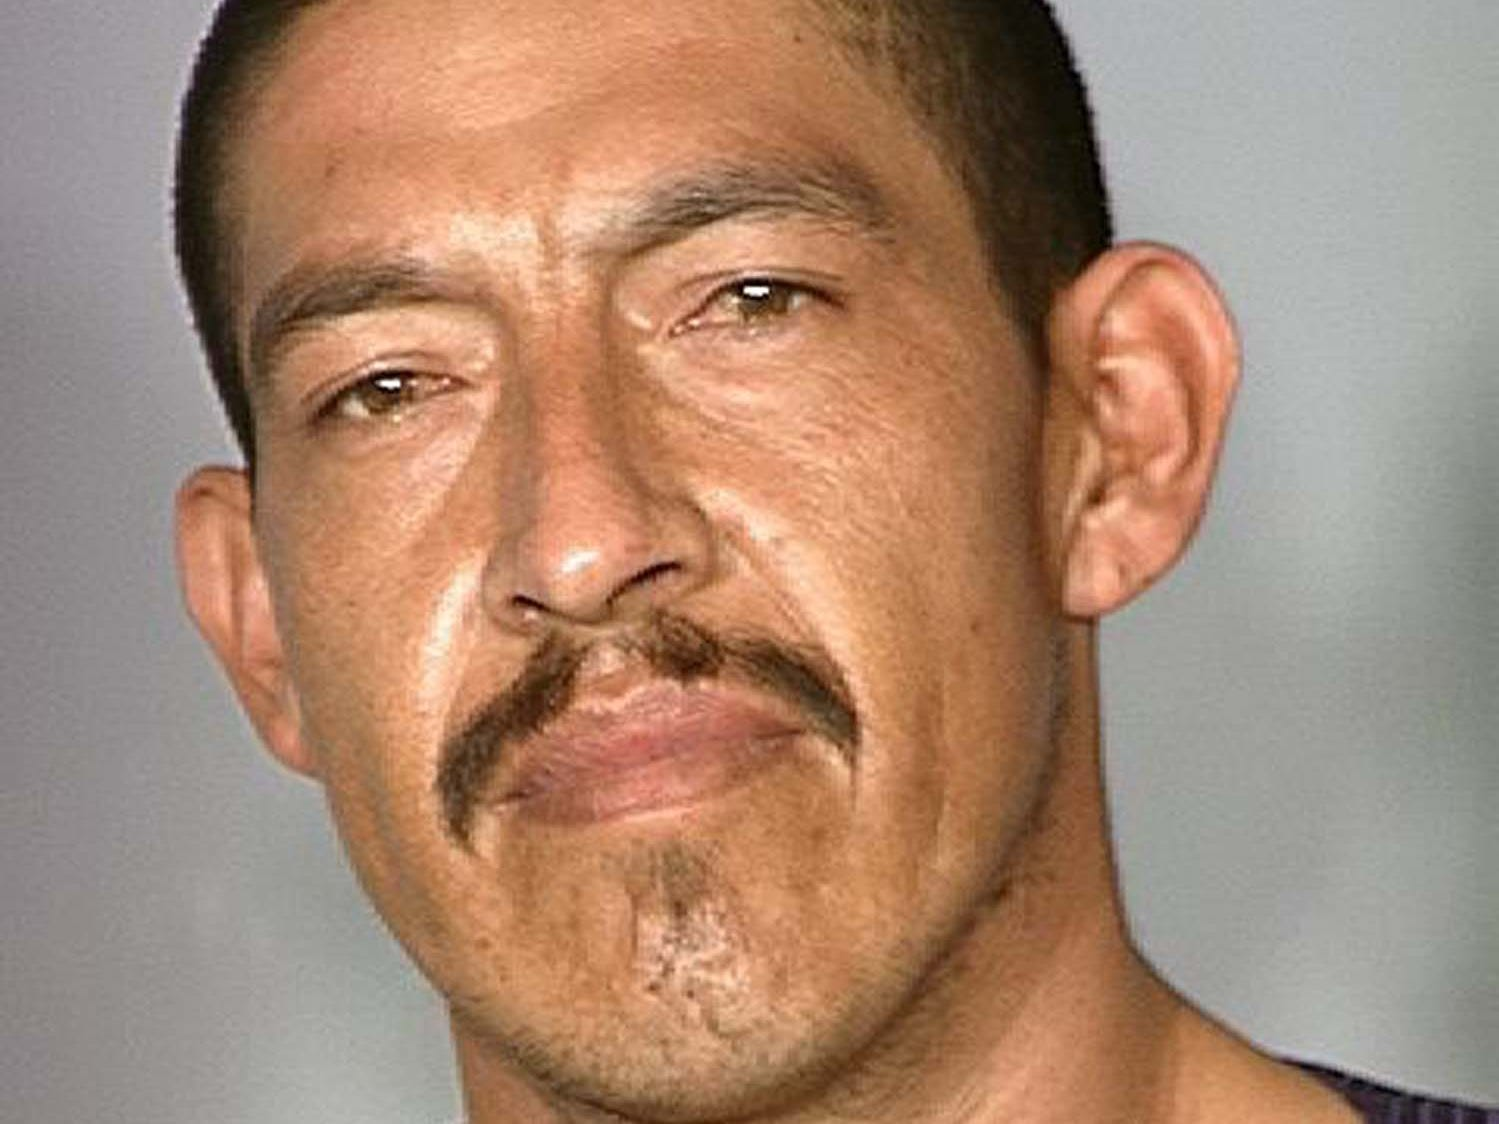 "Alejandro Cervantes-Rodriguez, 41, is wanted by the Nevada Department of Public Safety's Investigation Division for failing to appear in court for possession of a controlled substance with intent to sell. He is 6 feet 3 inches tall, weighs 170 pounds and has black hair and brown hair. He also has several tattoos including the phrase ""Trinidad Taiana Daddys Little Girl"" on his chest. He also has ties in Mesquite, Nev."